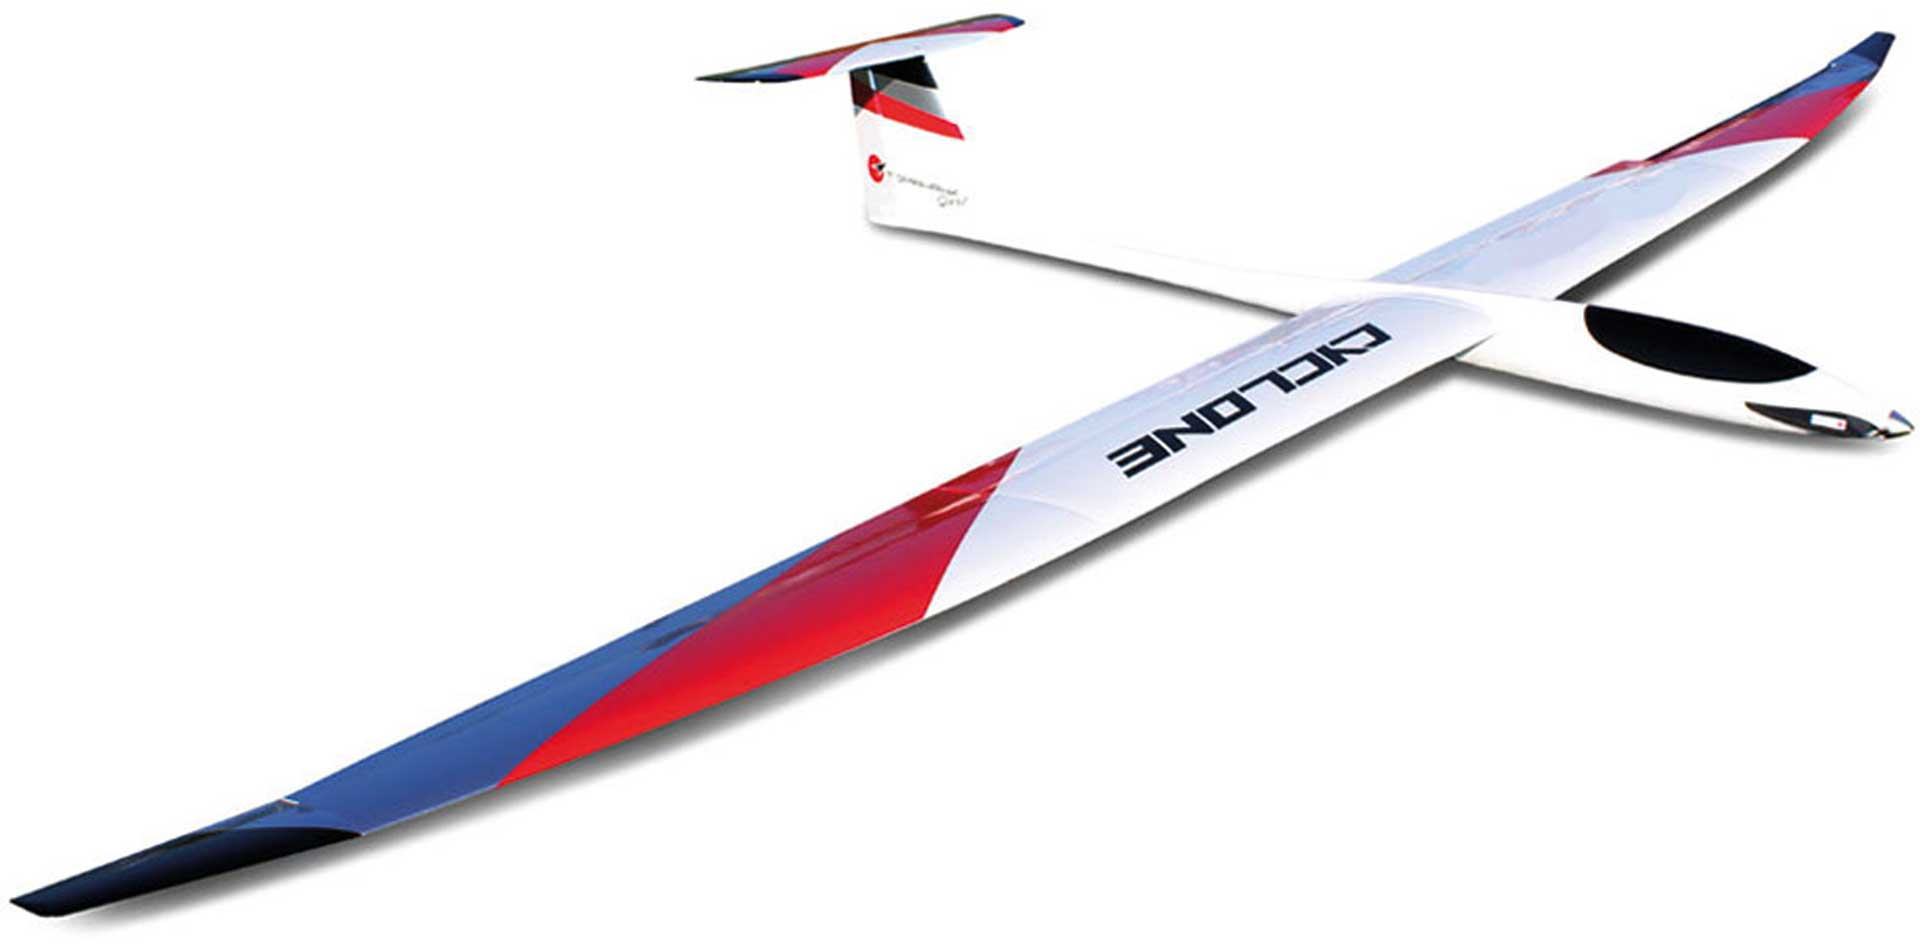 ROBBE CYCLONE 5,5 M ARF WITH GRP FUSELAGE, TWO 3- PARTIAL WINGS WITH ABACHI-PLANKING